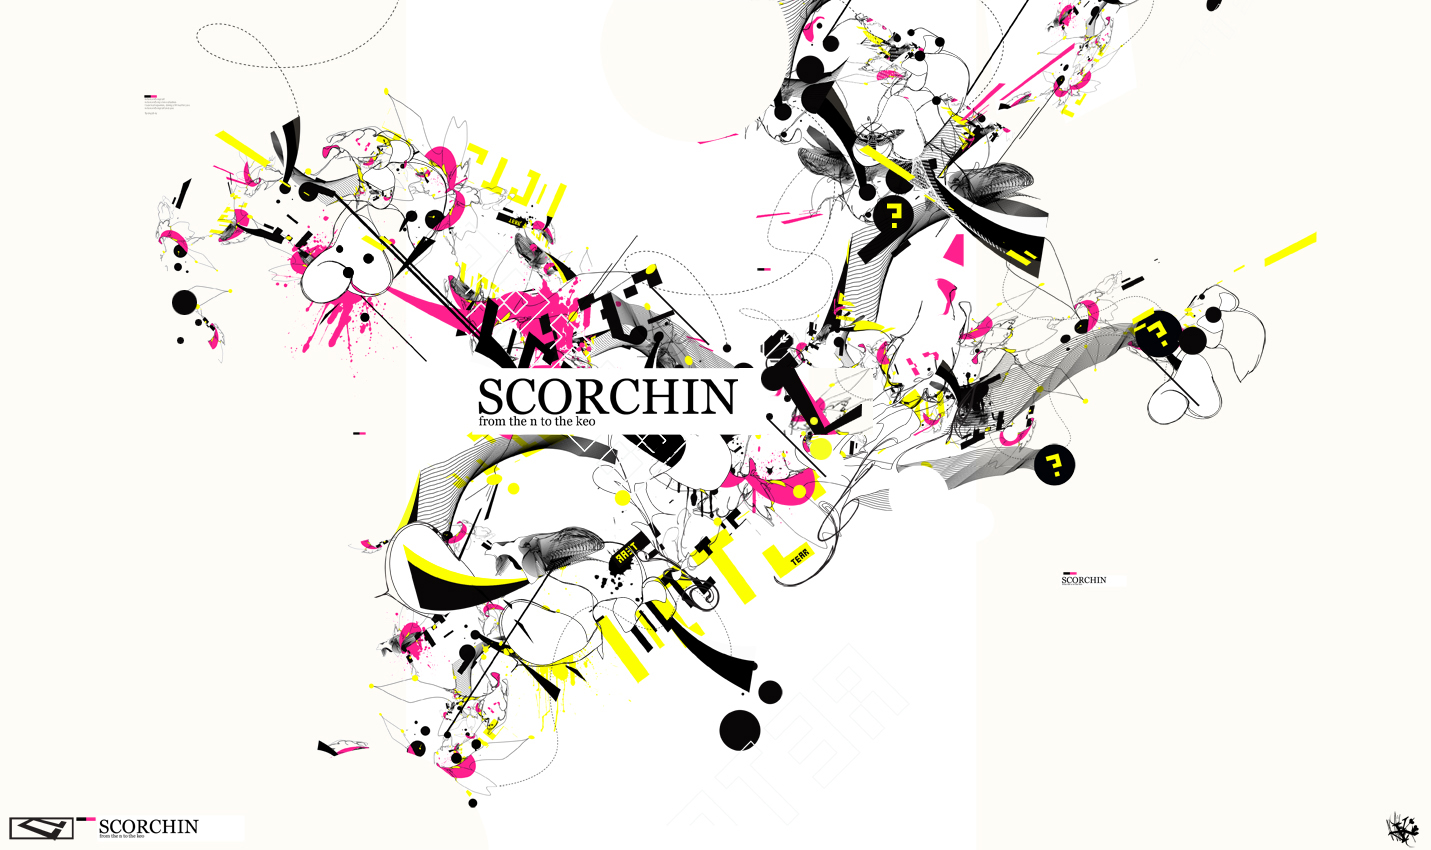 Scorchin by Rik Oostenbroek +